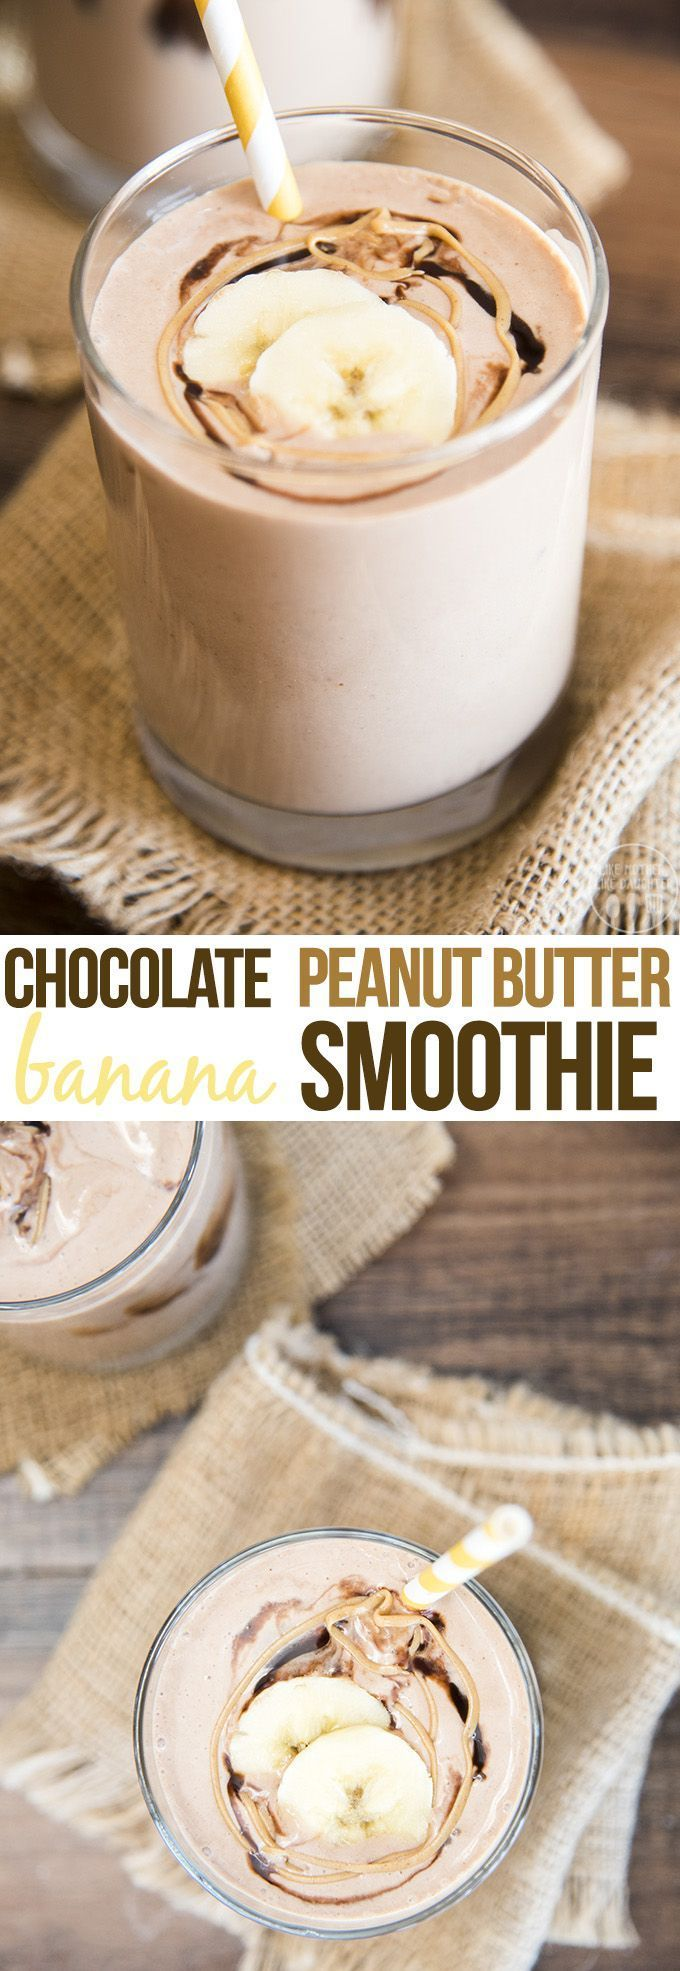 Chocolate Peanut Butter Banana Smoothie – This easy smoothie is the perfect creamy smoothie for a sweet breakfast or lighter dessert!